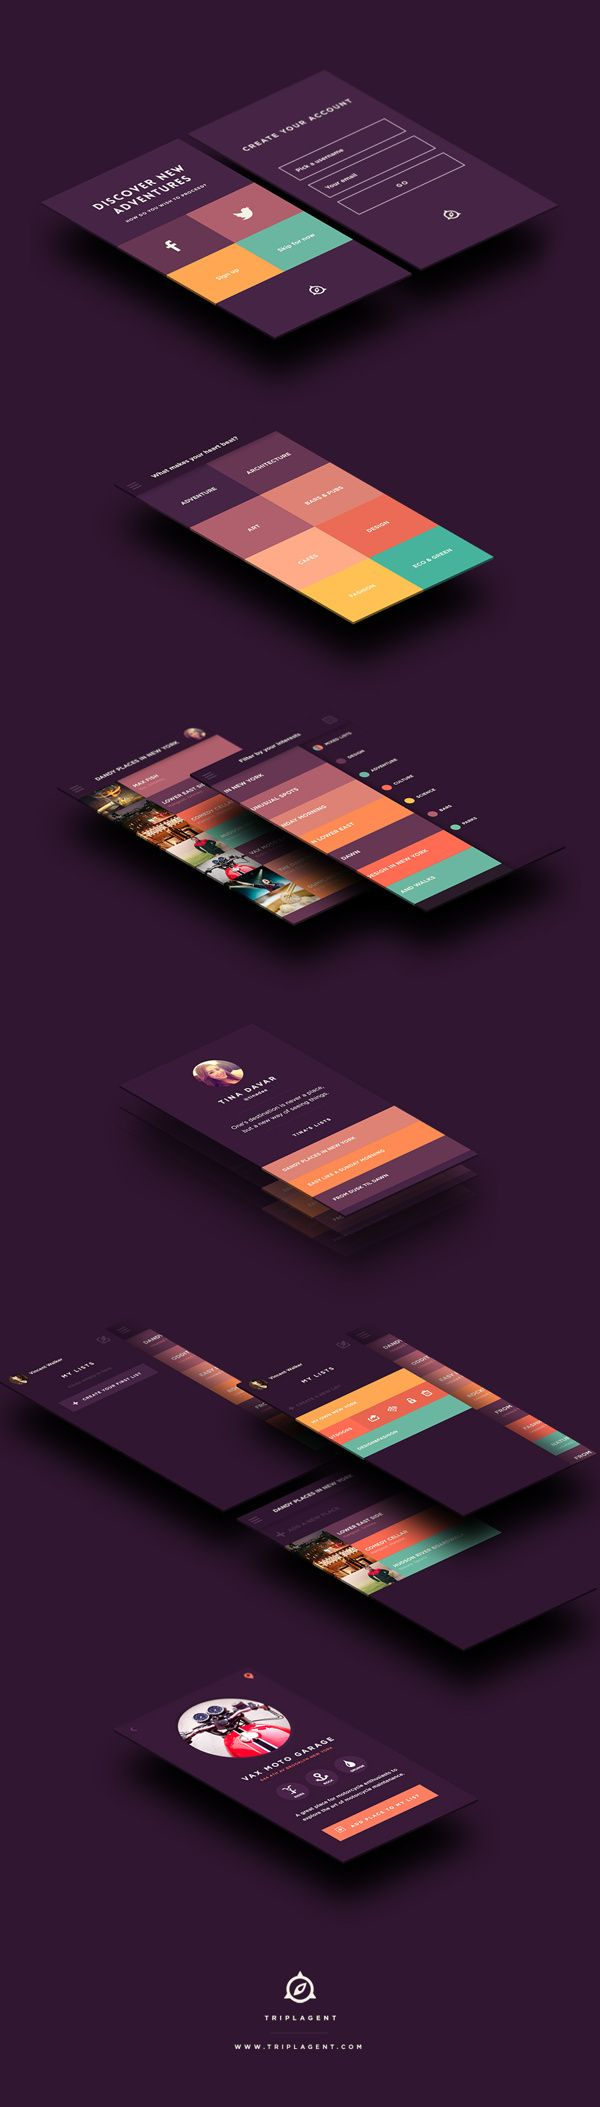 "TriplAgent *** ""TriplAgent - Mobile design and branding for a travel app where people can find the best places in the world based on their interests."" by Taras Kravtchouk, via Behance *** #app #mobile #gui #behance"